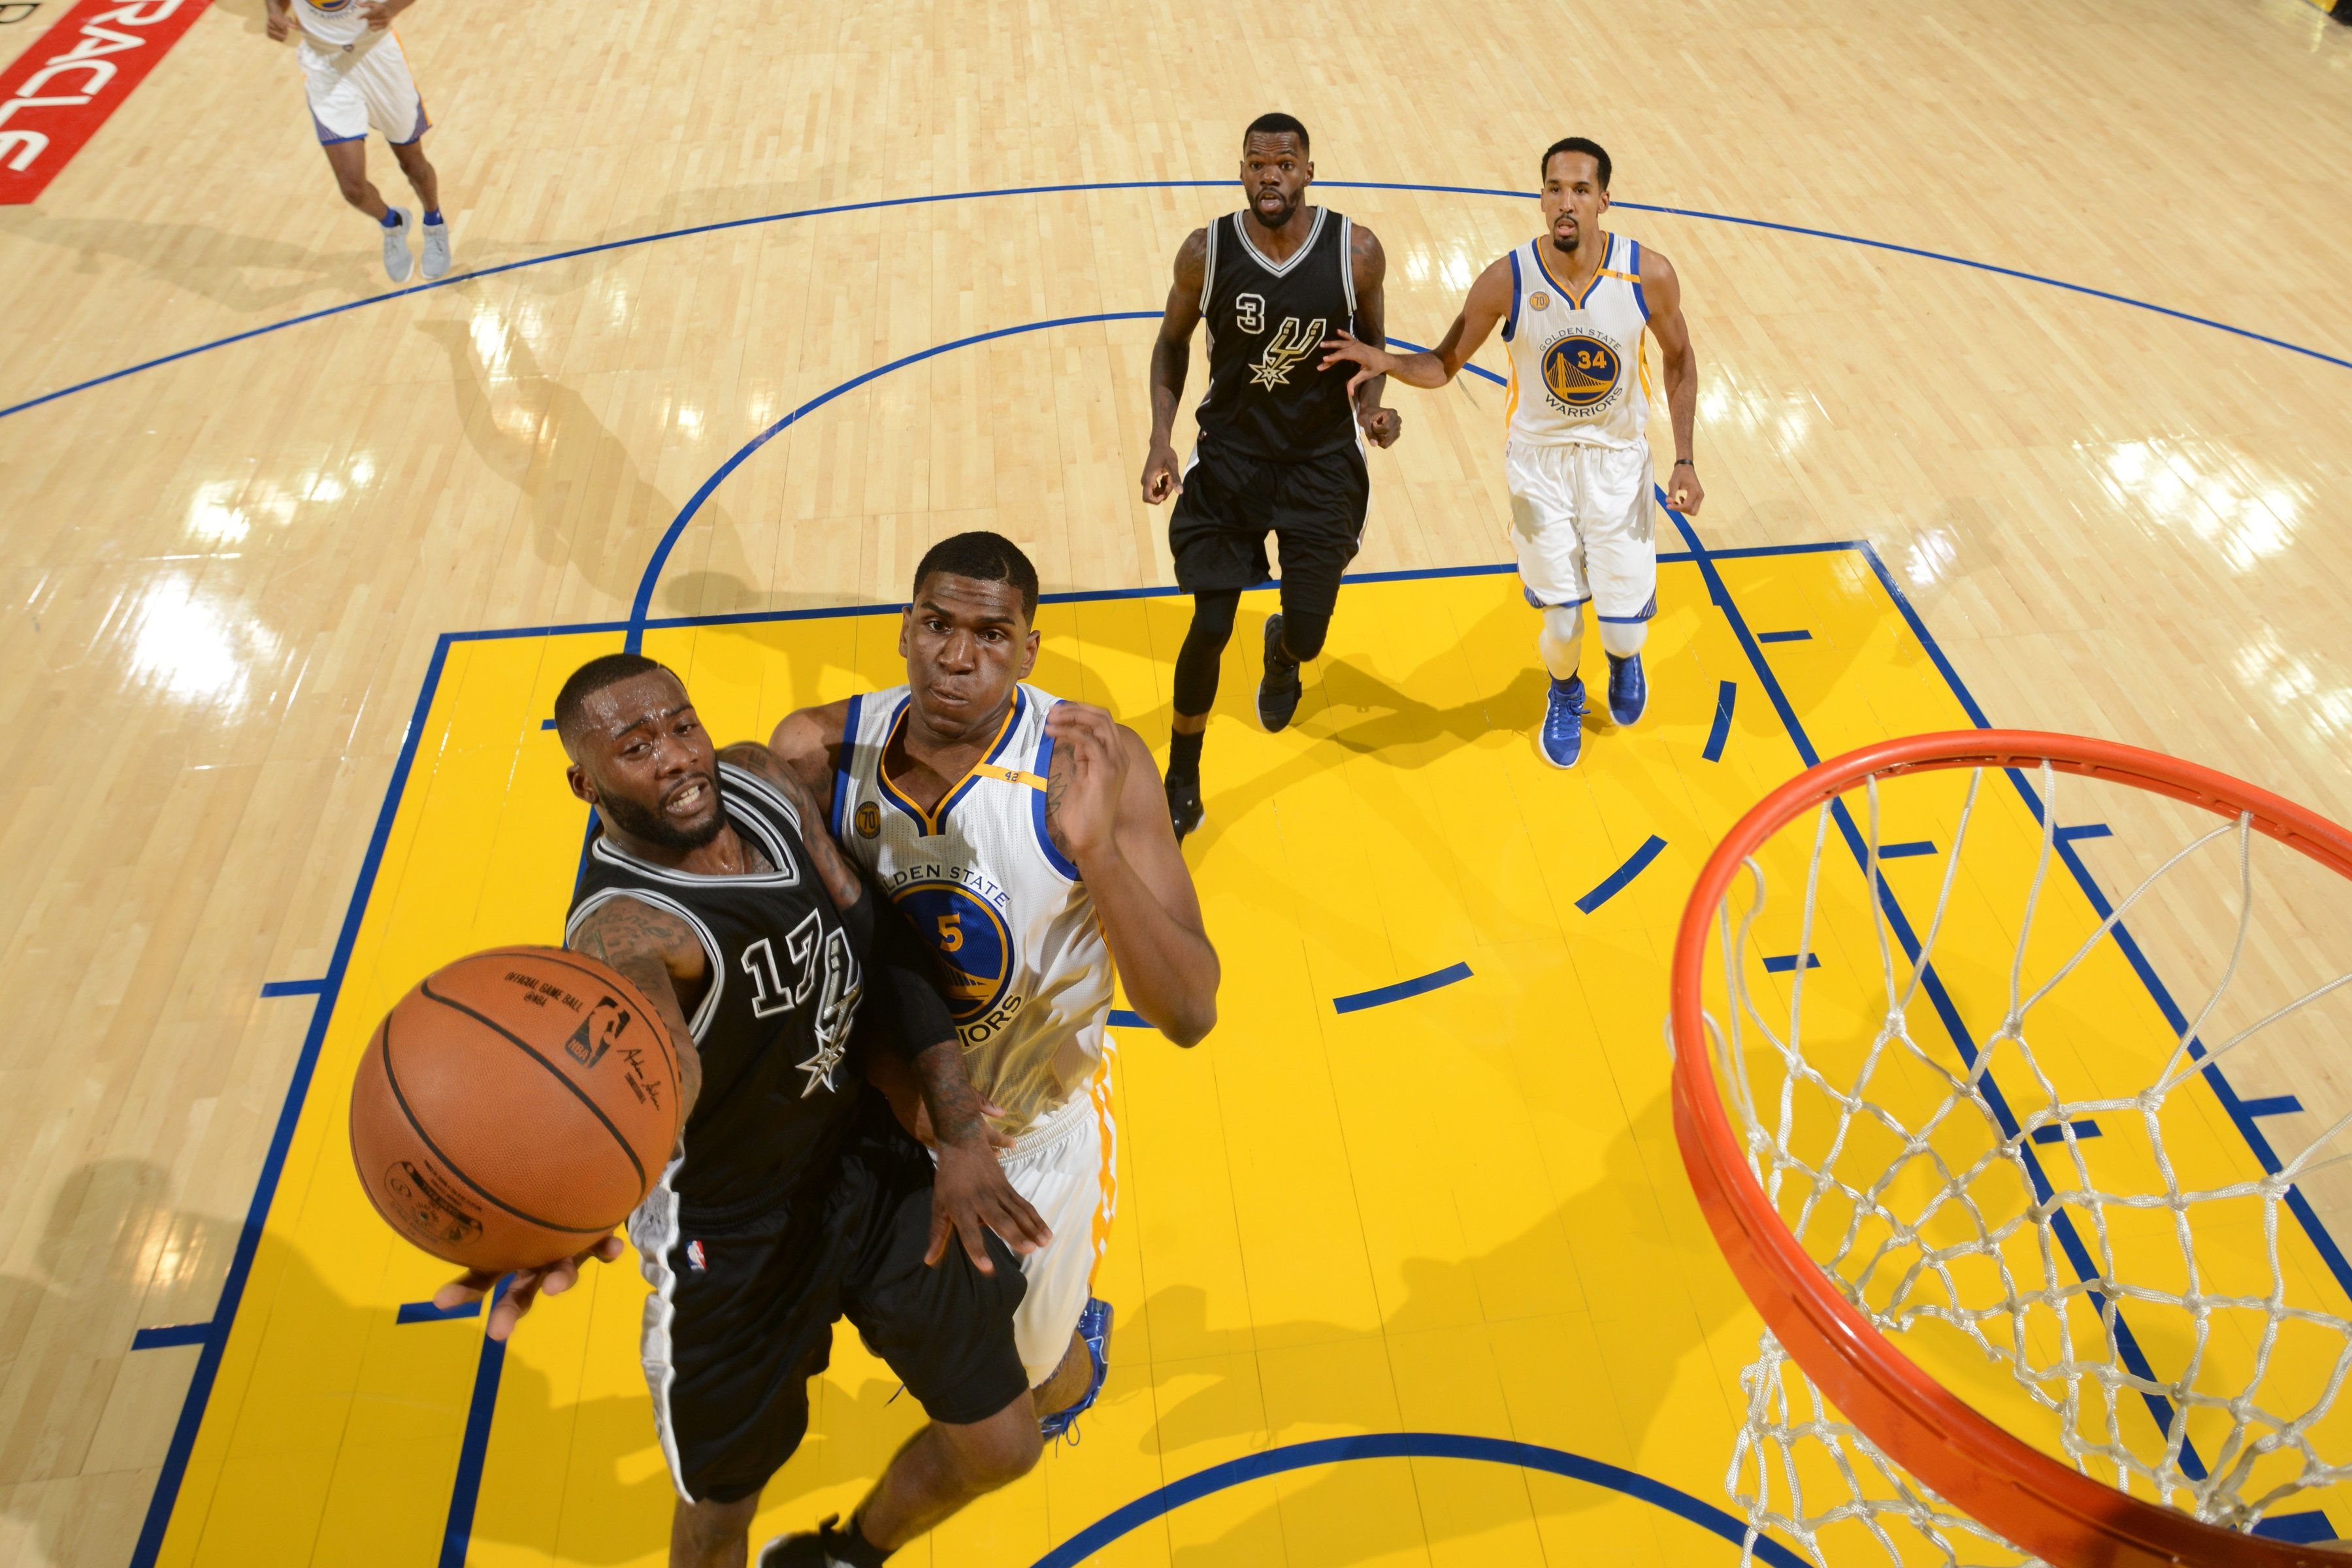 Jonathon Simmons drives to the basket against Kevon Looney on Oct. 25, 2016, at Oracle Arena in Oakland, California